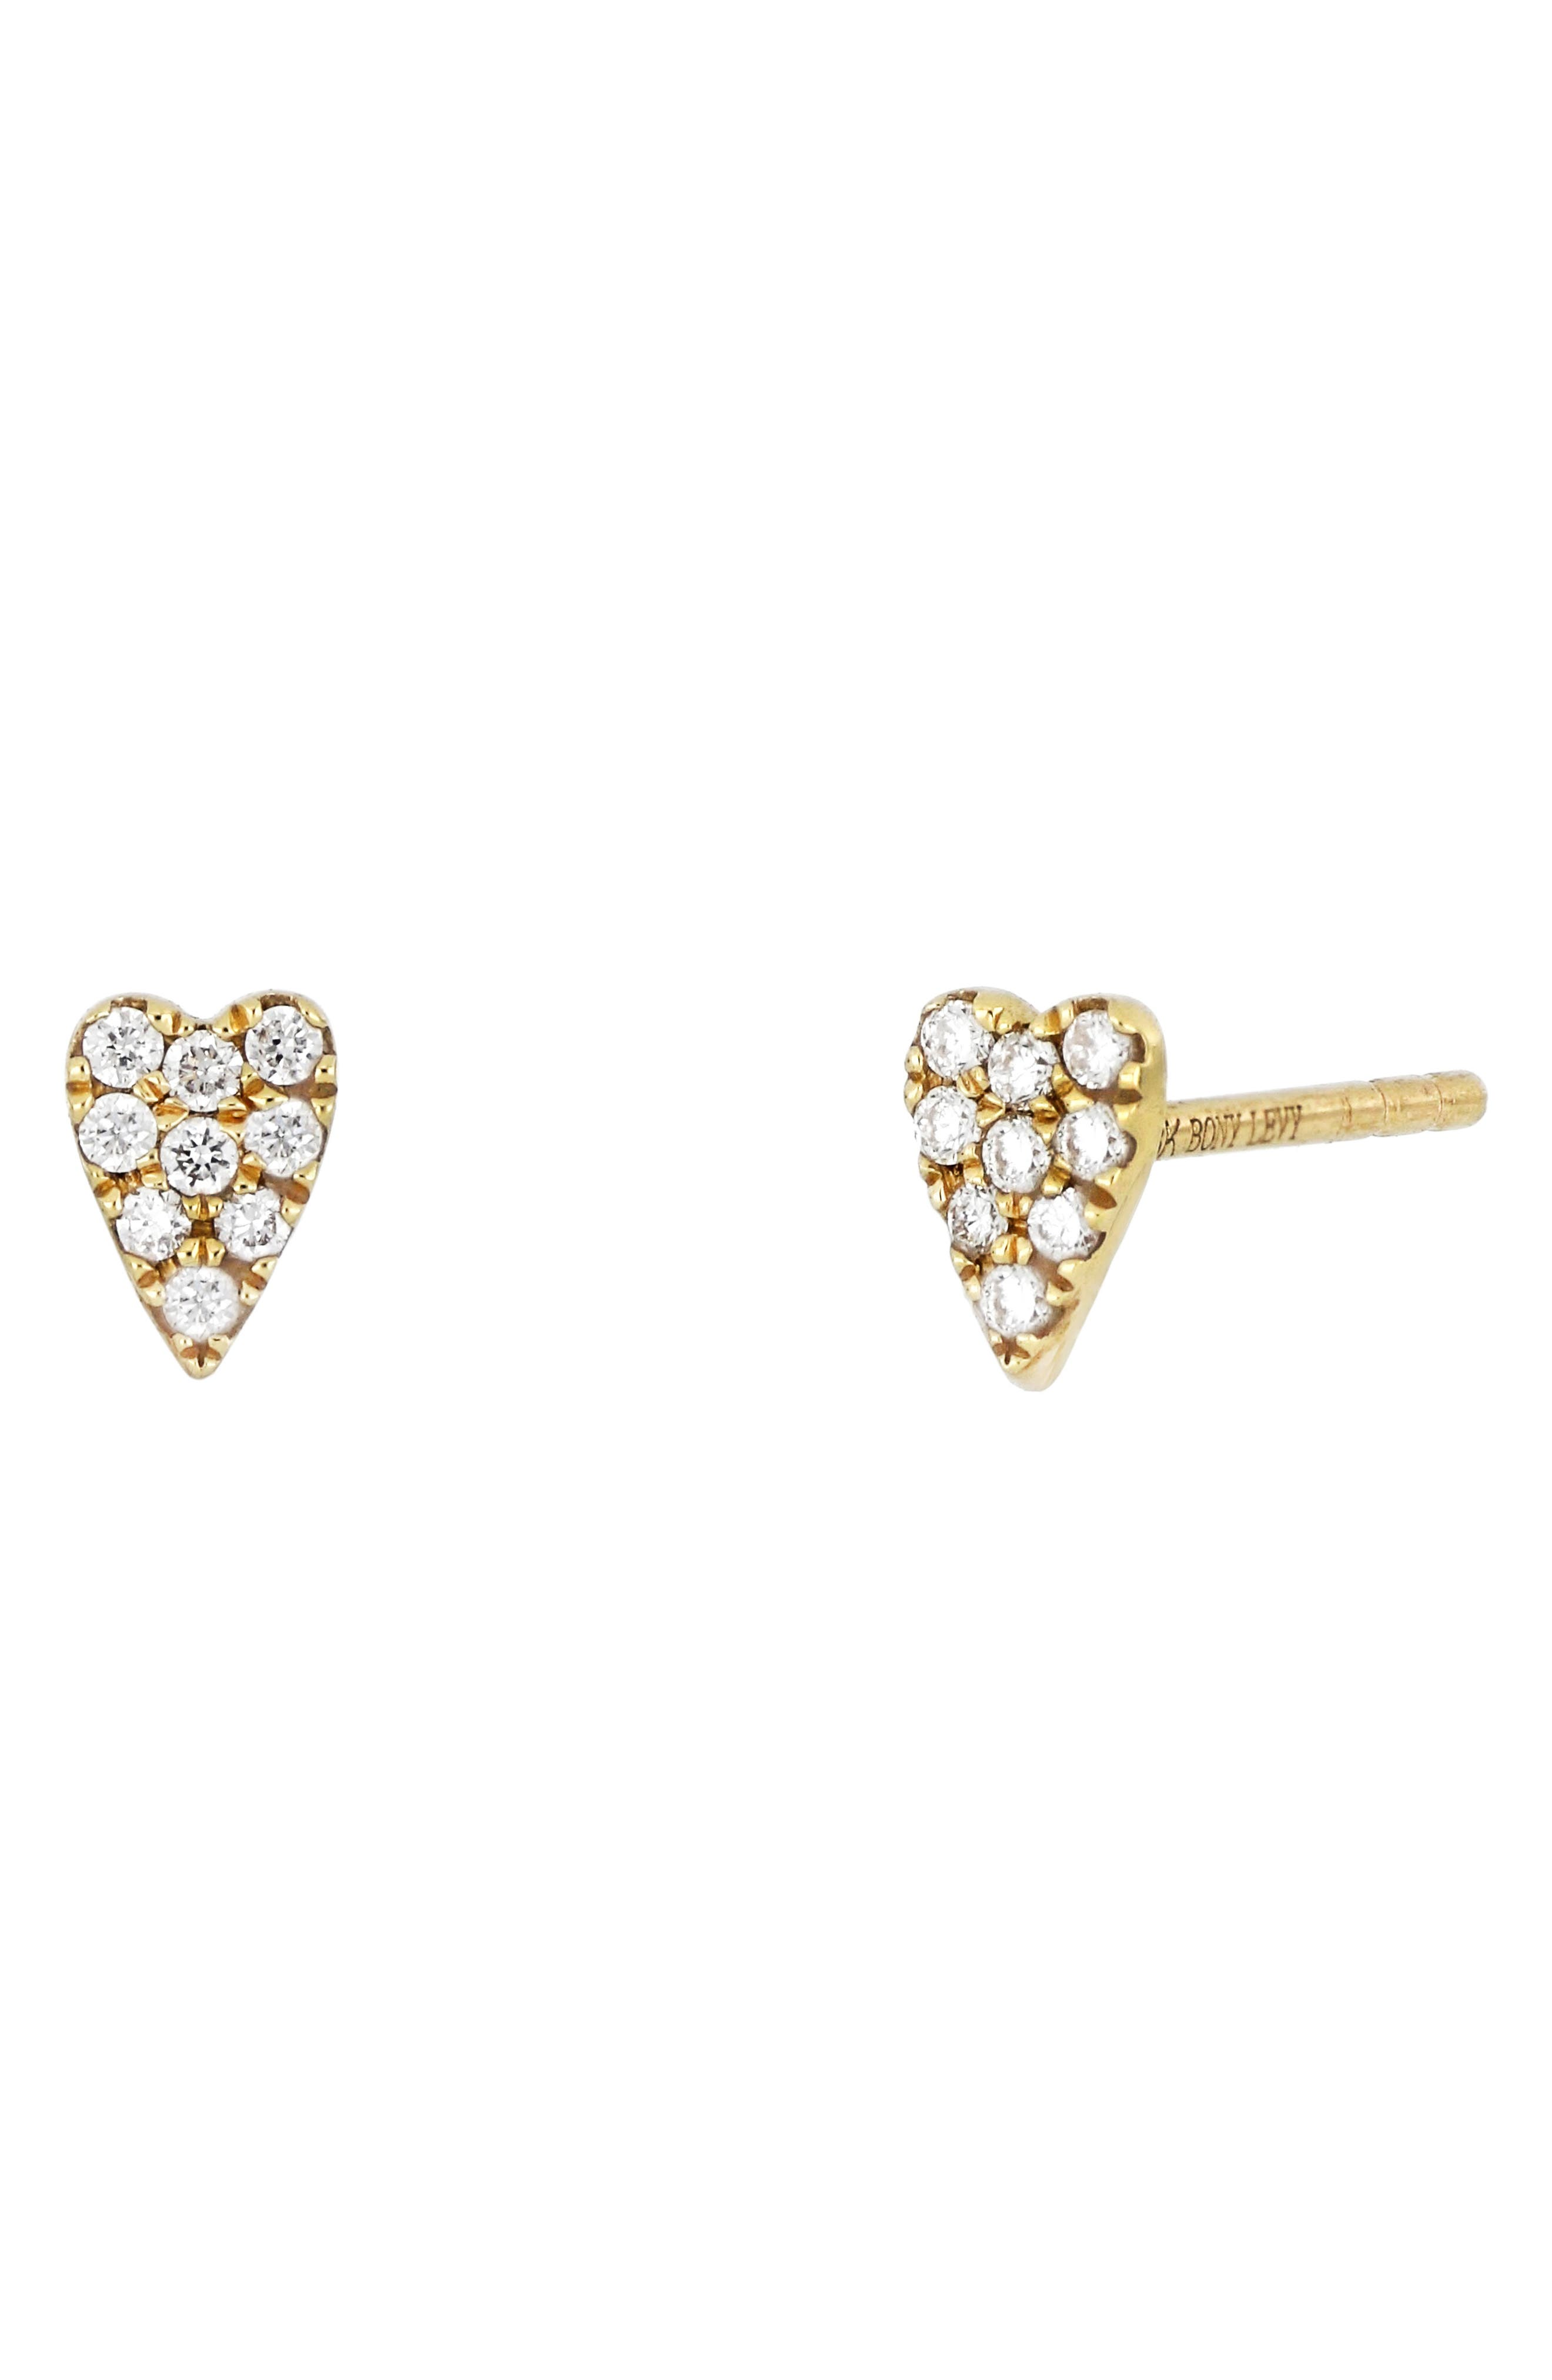 Pave diamonds illuminate these elongated 18-karat-gold heart studs that make a sweet everyday accessory. Style Name: Bony Levy Icons Diamond Heart Stud Earrings (Nordstrom Exclusive). Style Number: 6108304. Available in stores.